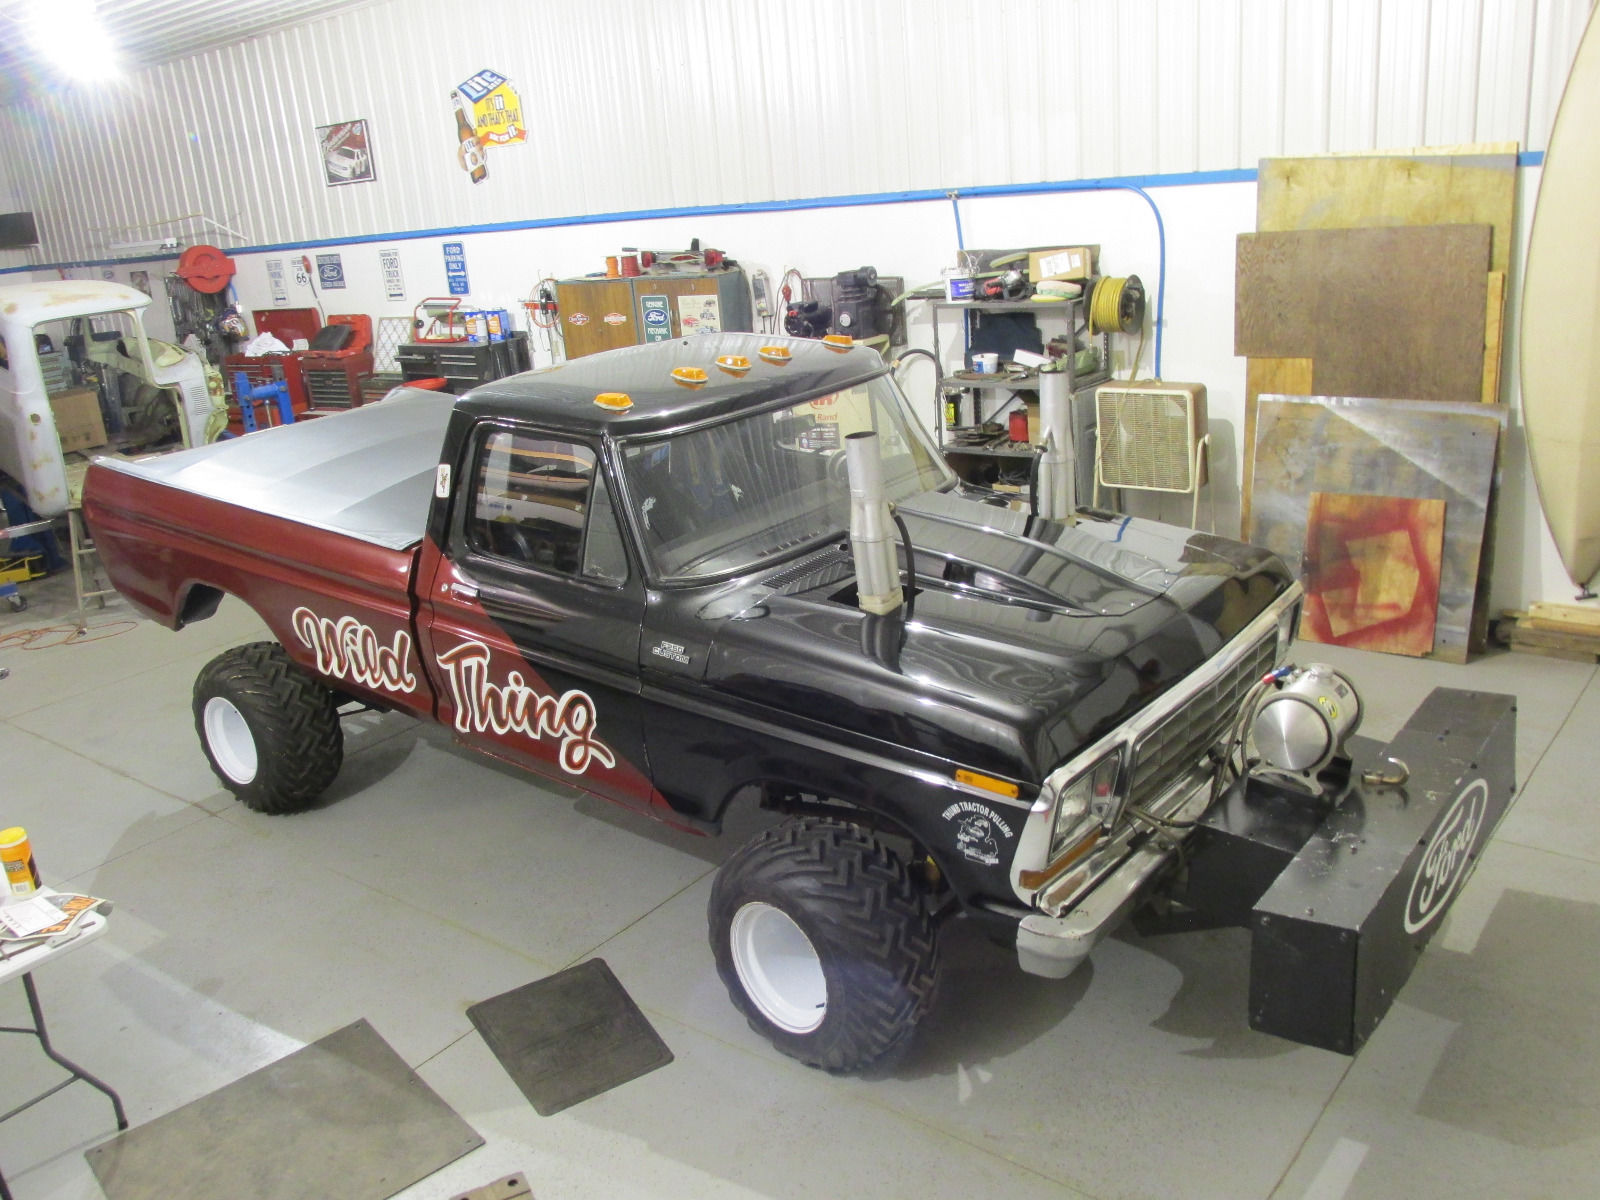 Find this 1979 ford f 250 wild thing here on ebay bidding for 5 000 located in lapeer mi with 4 days to go